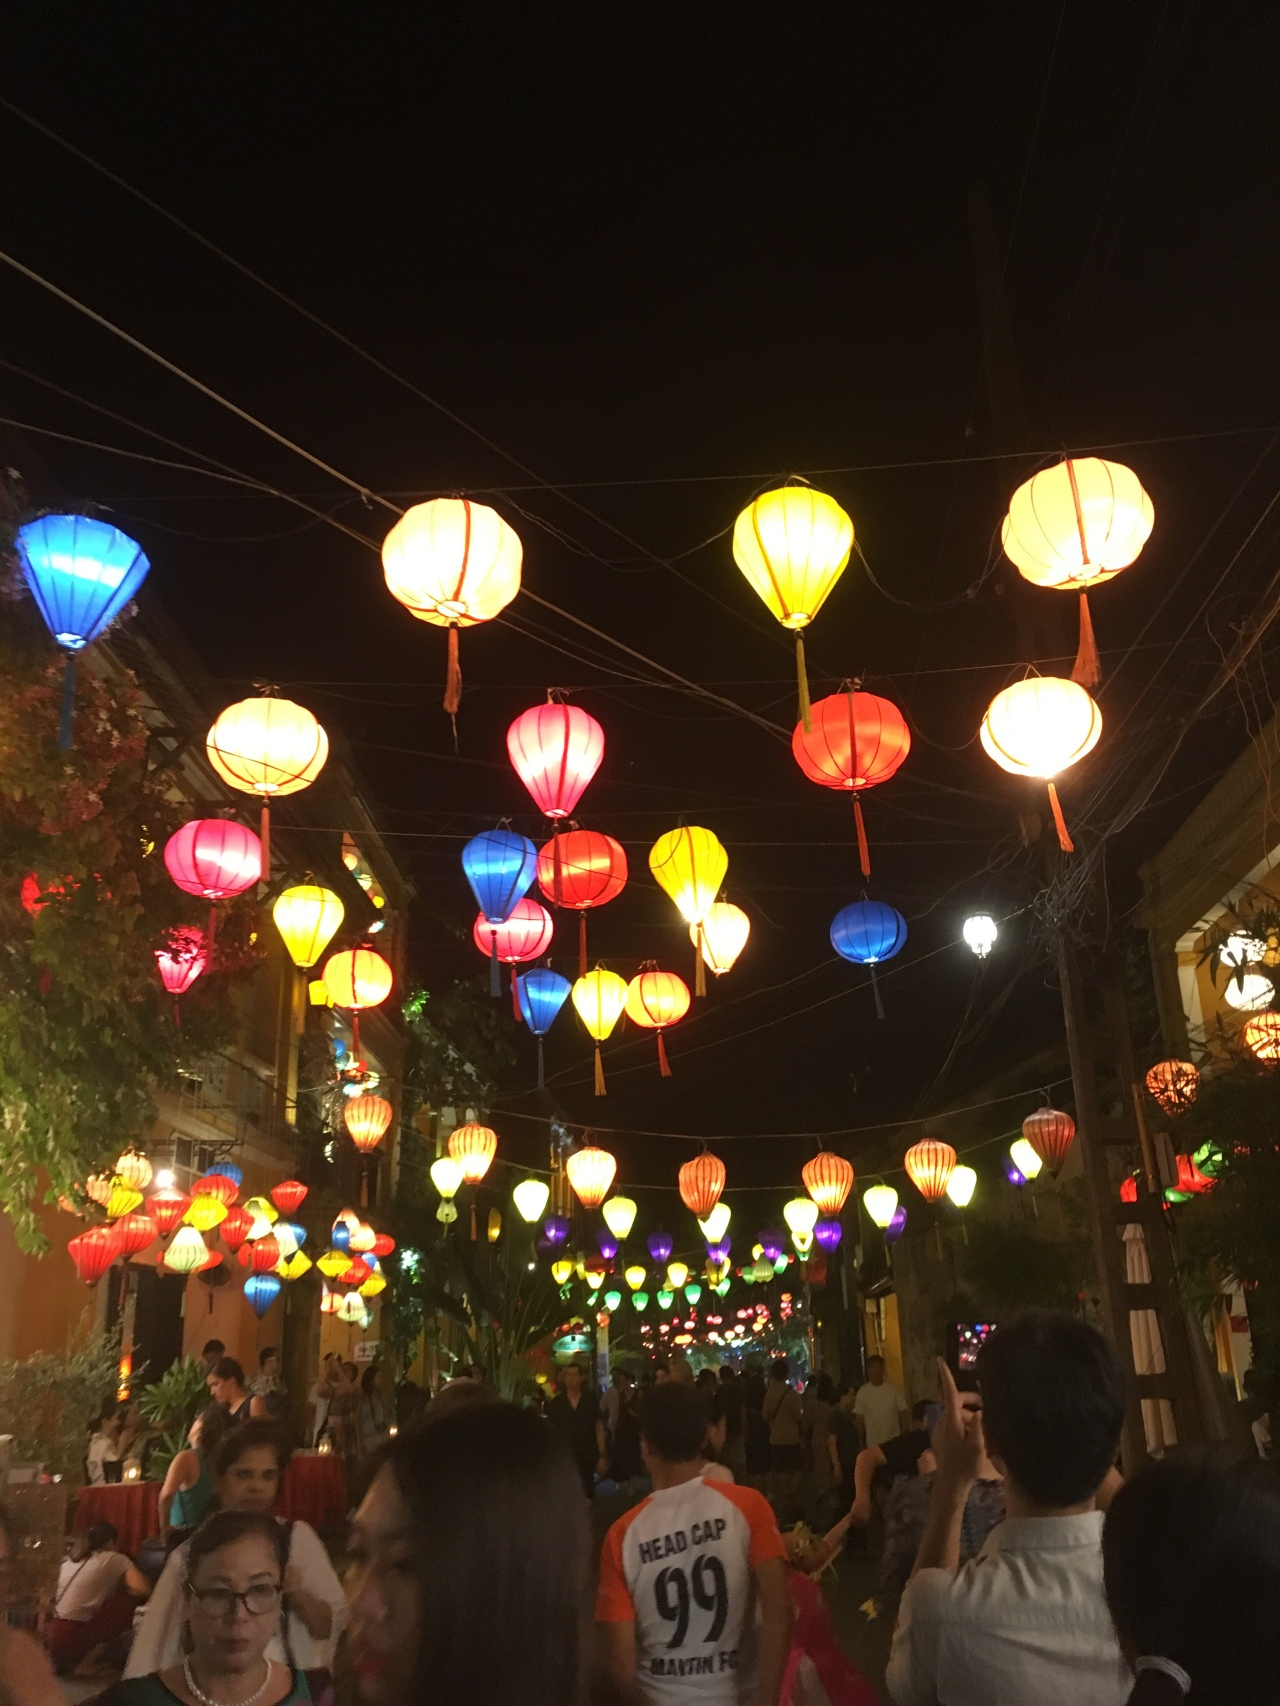 Hoi An by night